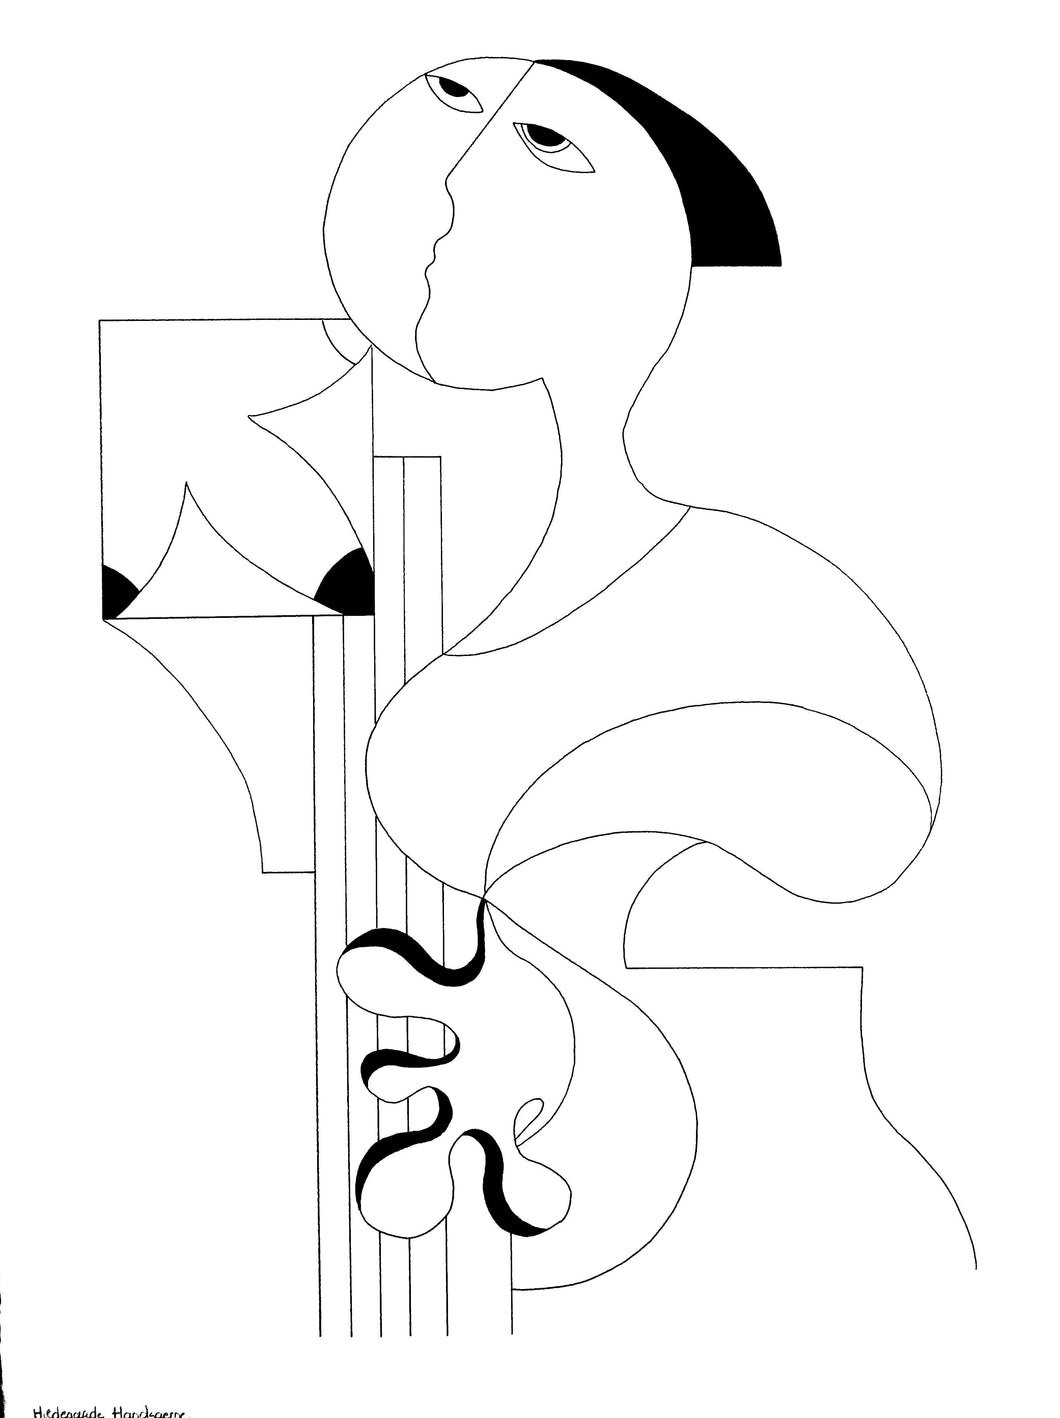 La Femme Musicale by Hildegarde Handsaeme, Drawing at Art Acacia Gallery & Advisory